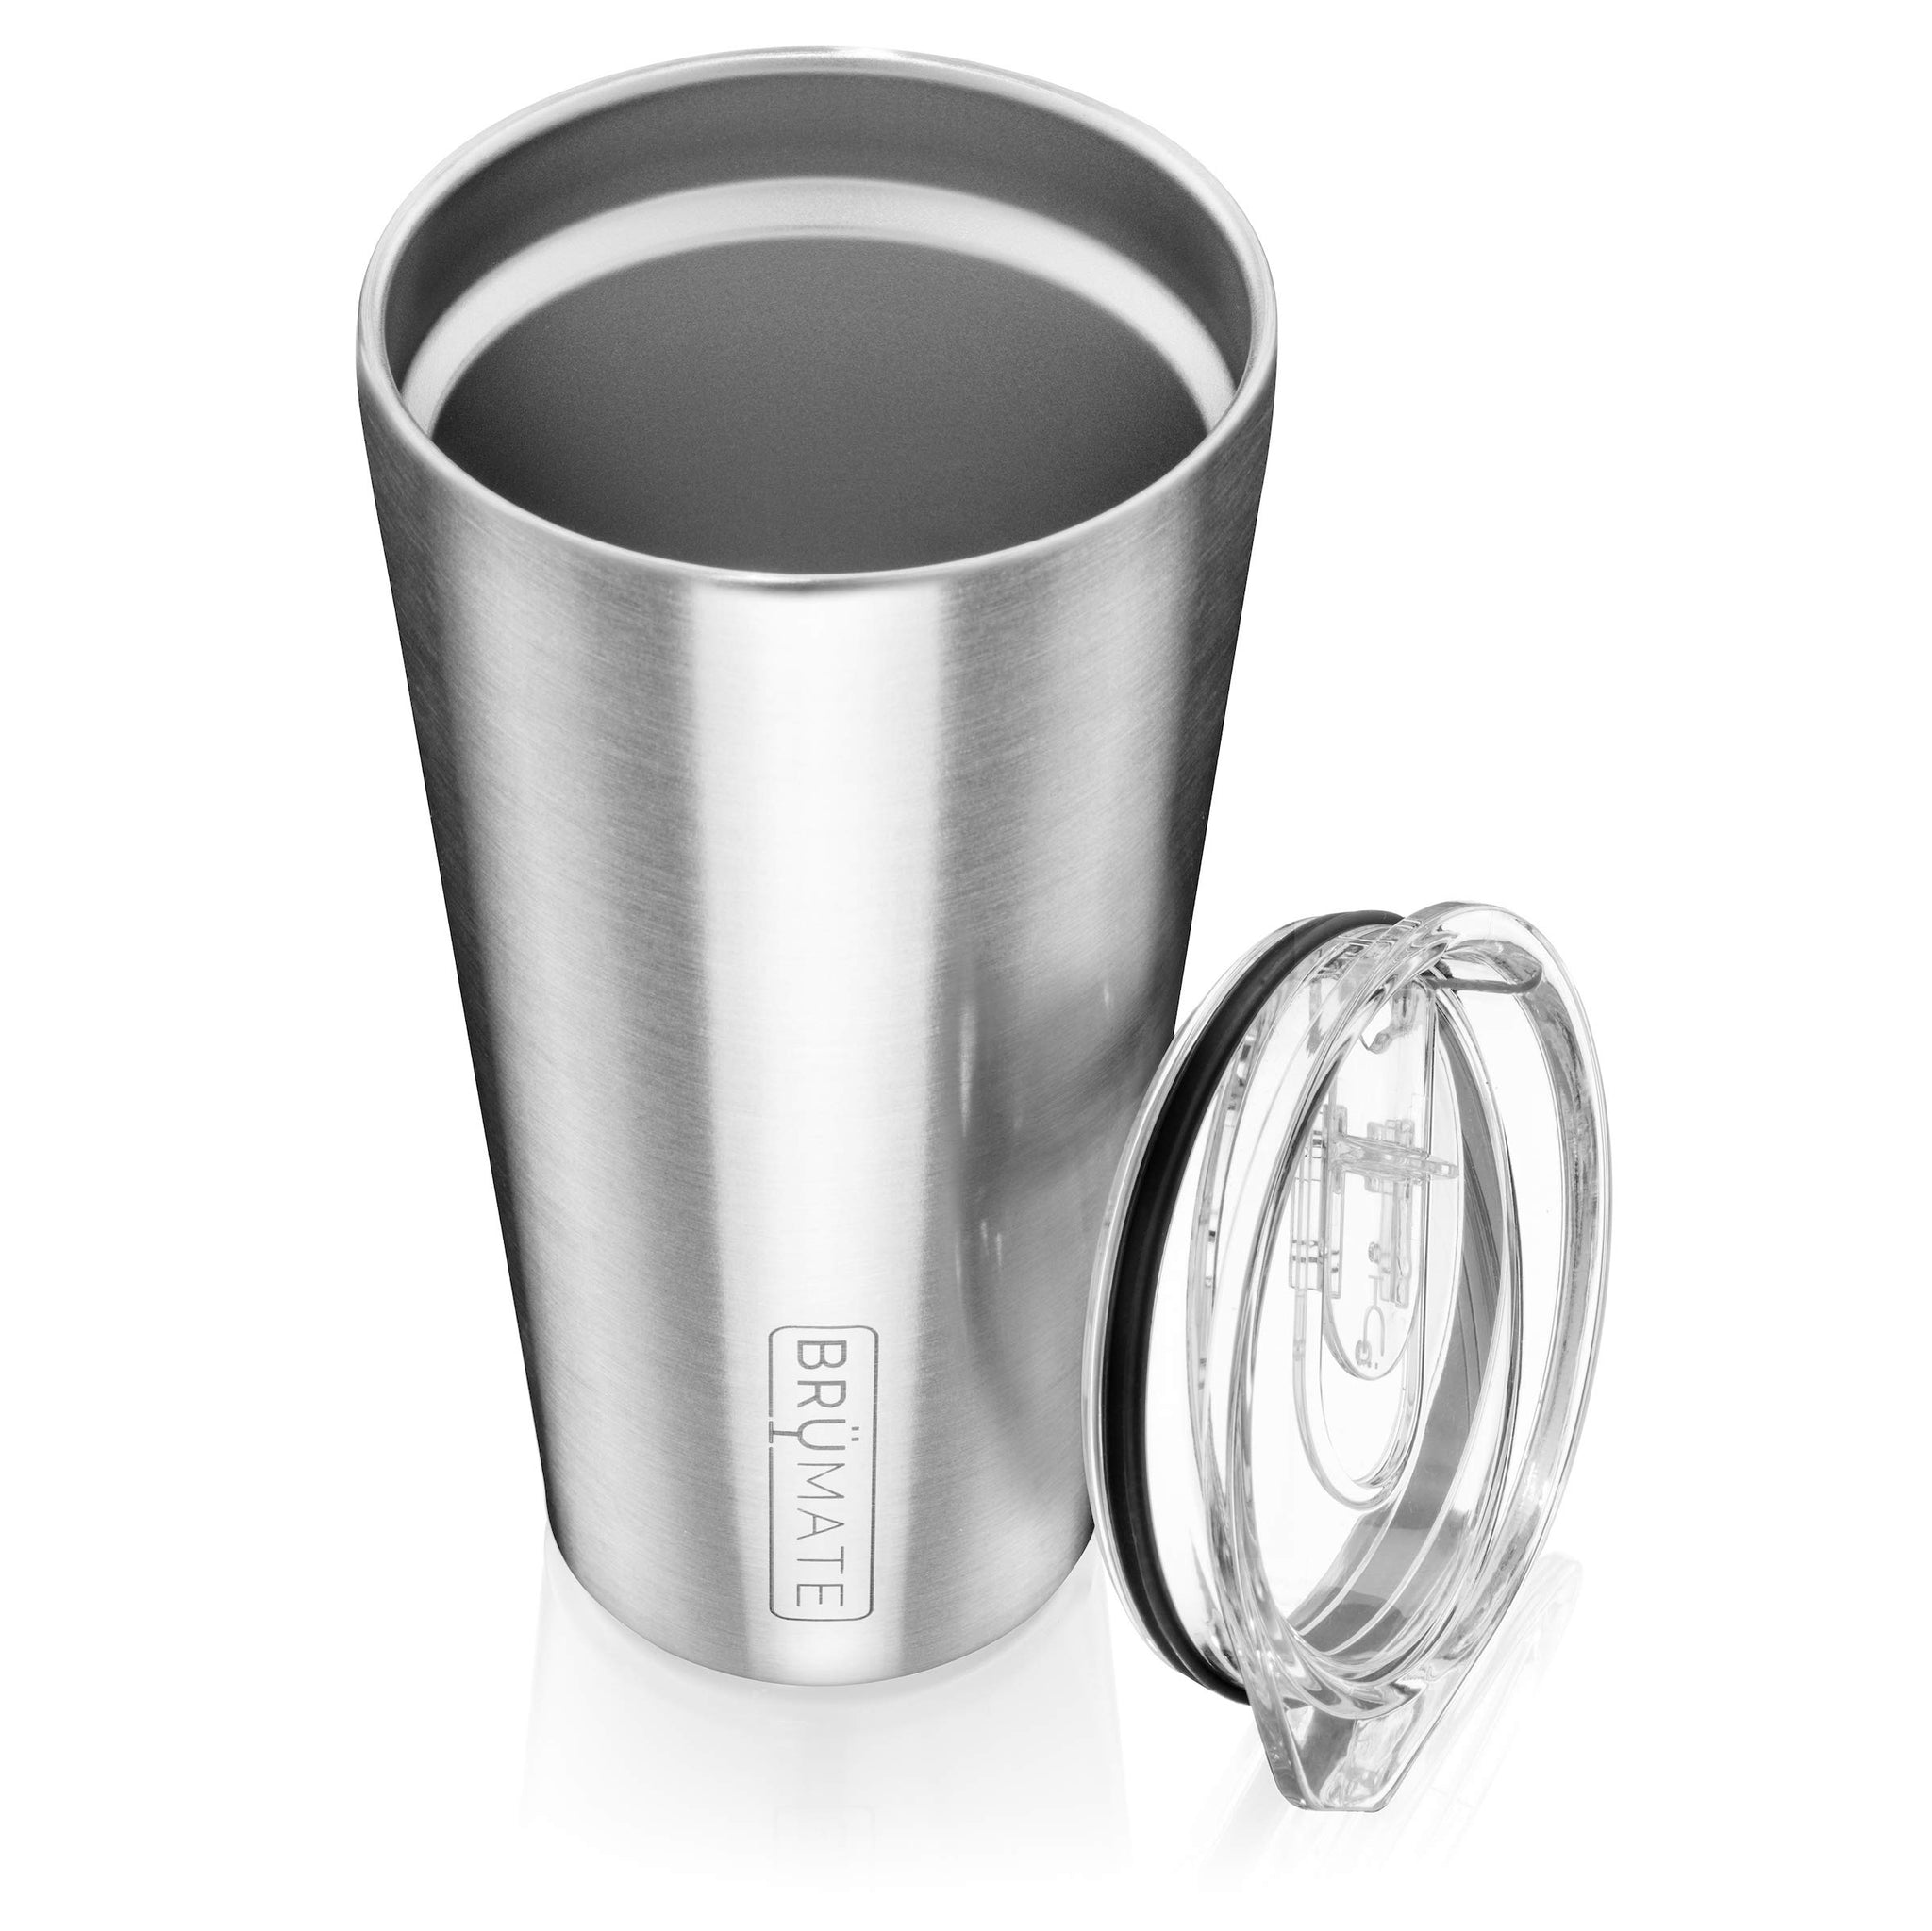 Brümate Imperial Pint 20oz Shatterproof Double Wall Vacuum Insulated Stainless Steel Travel & Camping Mug for Beer, Cocktails, Coffee & Tea with Splash-Proof Lid for Men & Women (Glitter White)